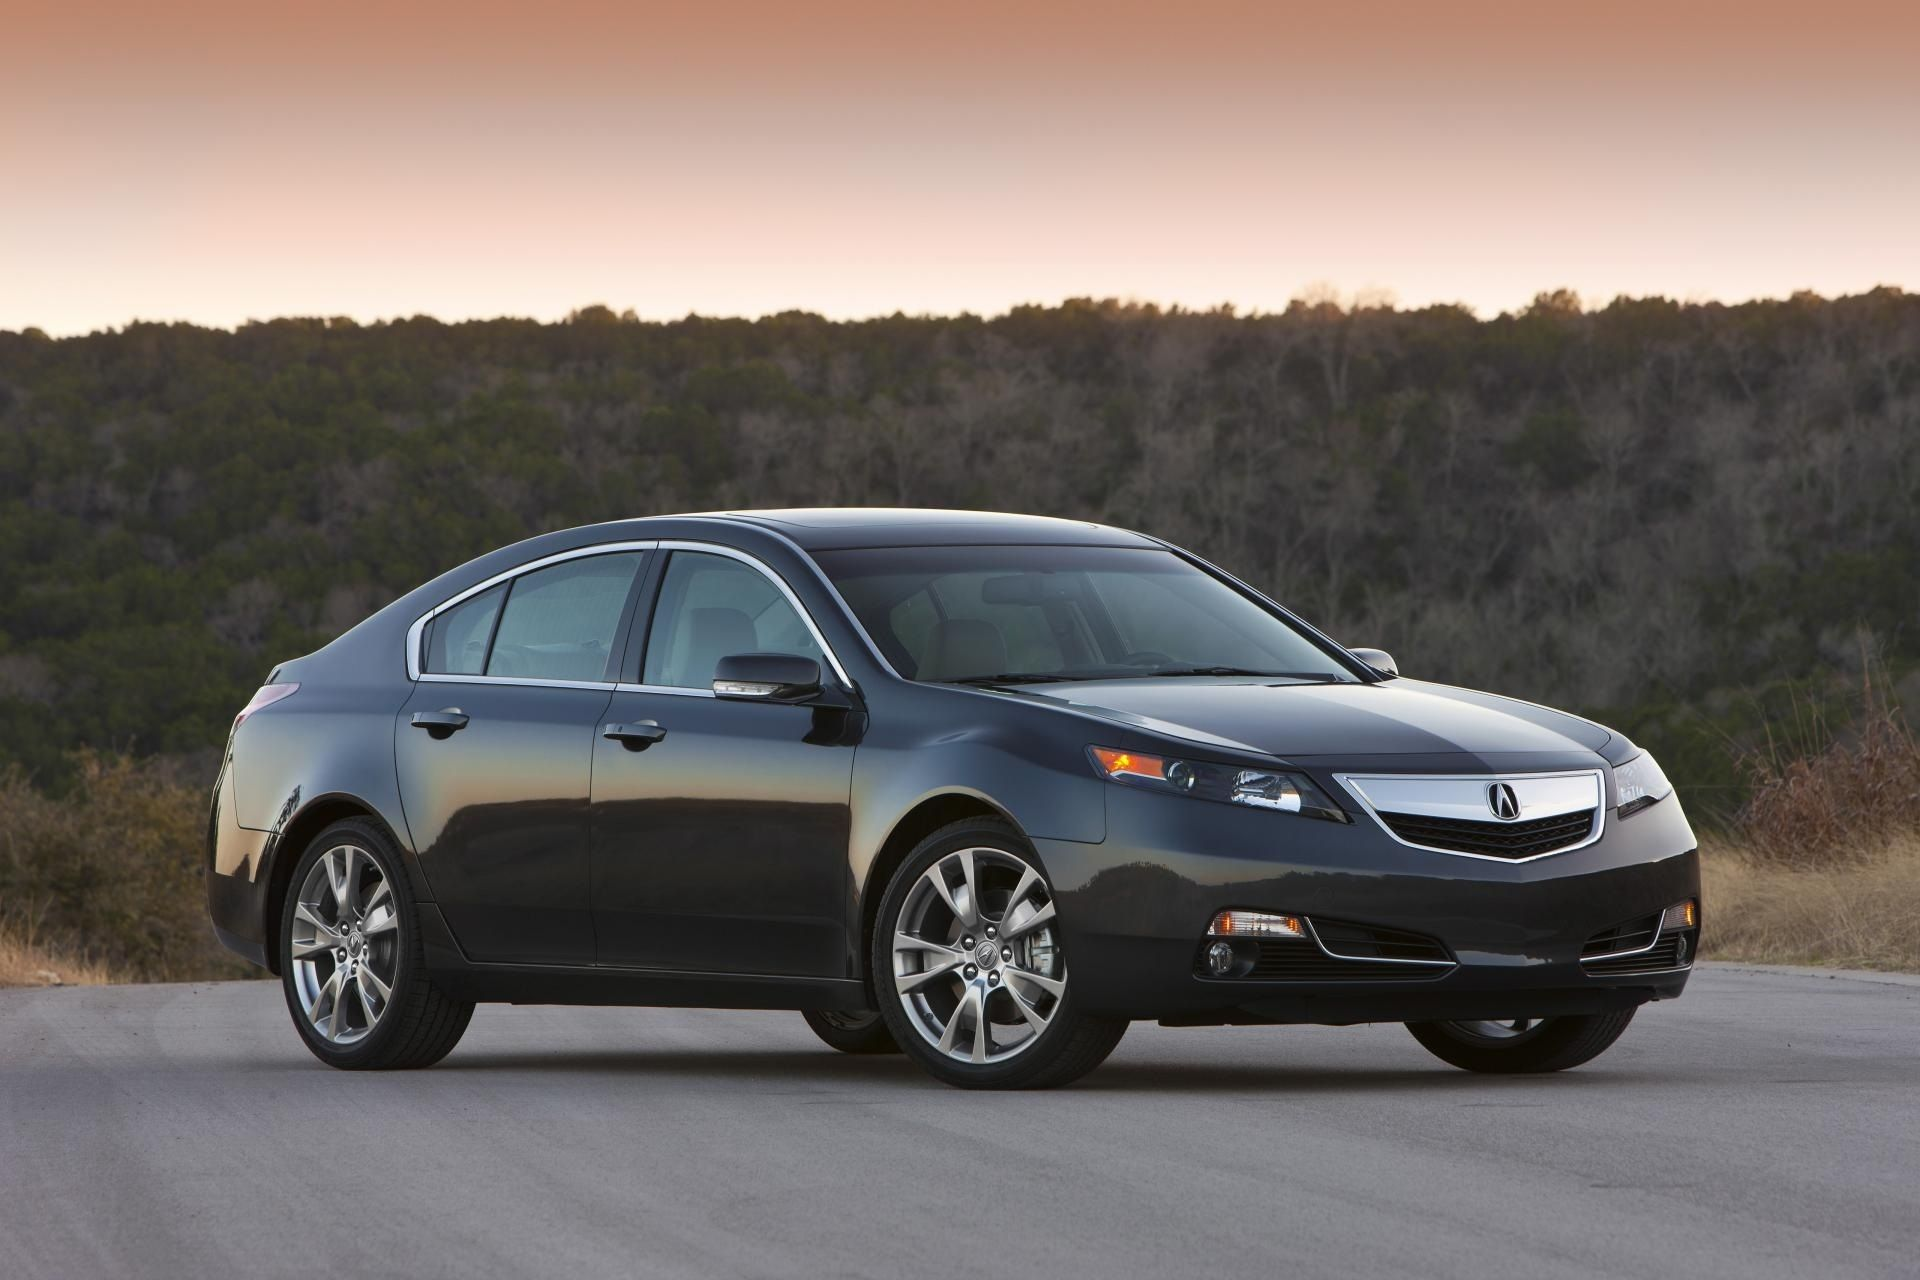 What Will The 2020 Acura Tl Type S Wallpaper Look Like Acura Tl Honda Accord Coupe Acura